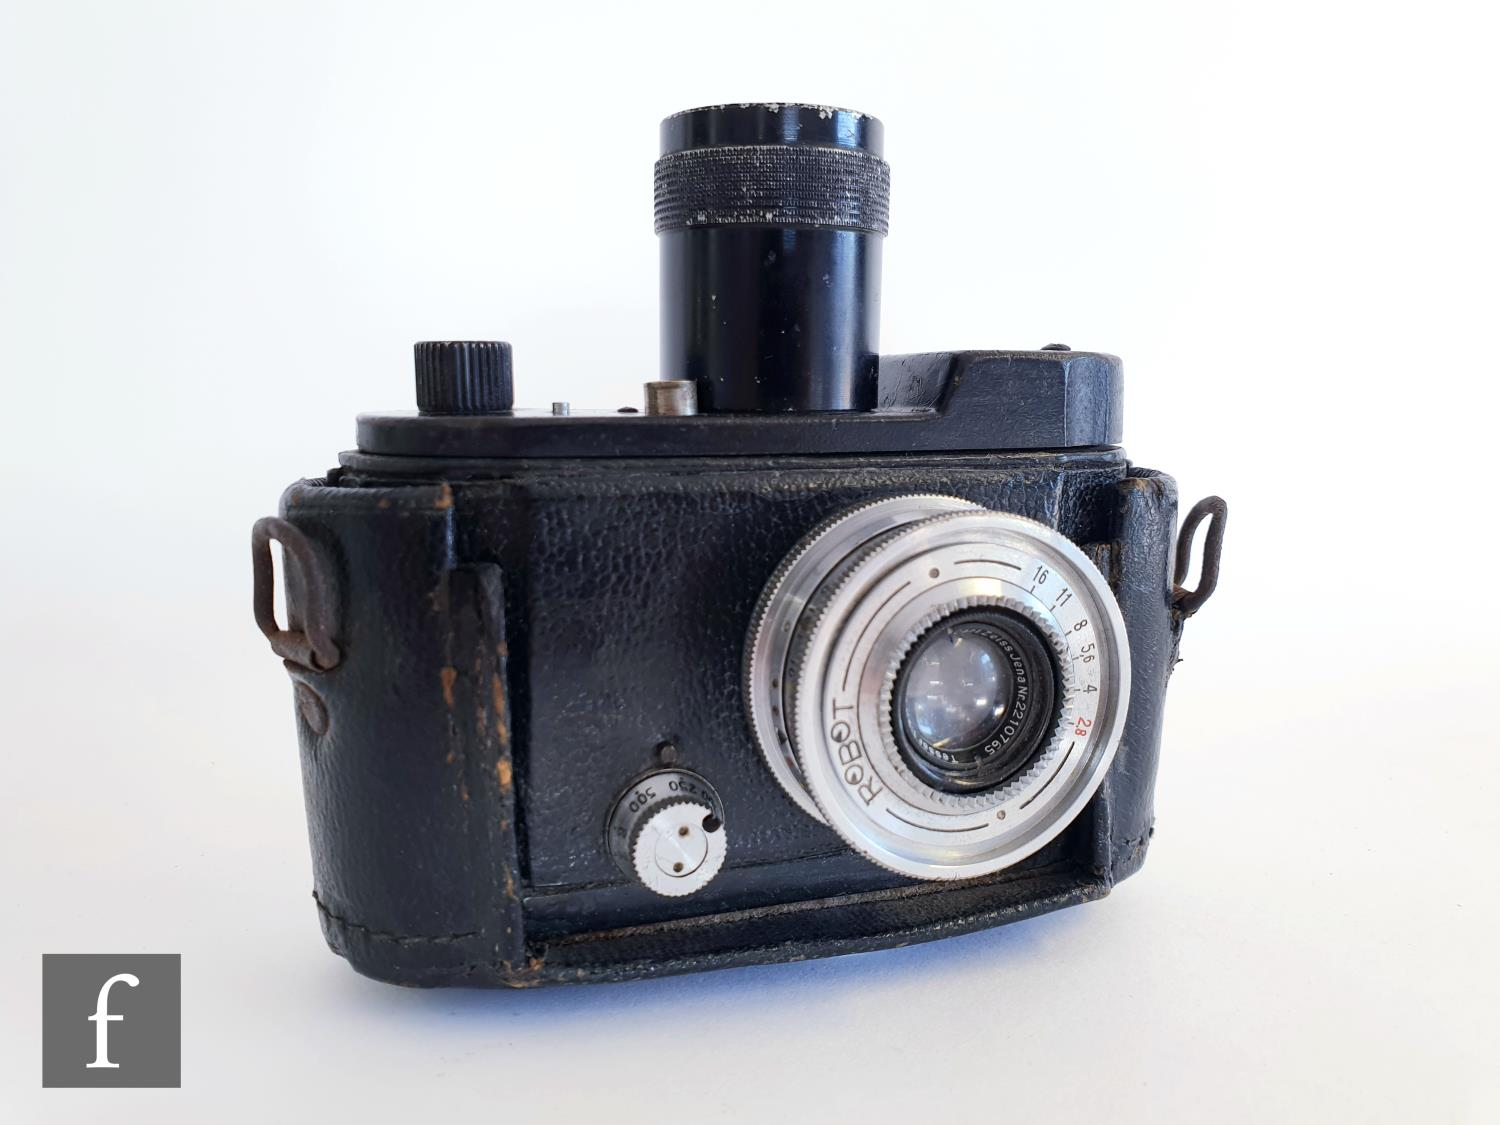 A Robot camera with Carl Zeiss lens serial No 2210765, in black leather case stamped to top for